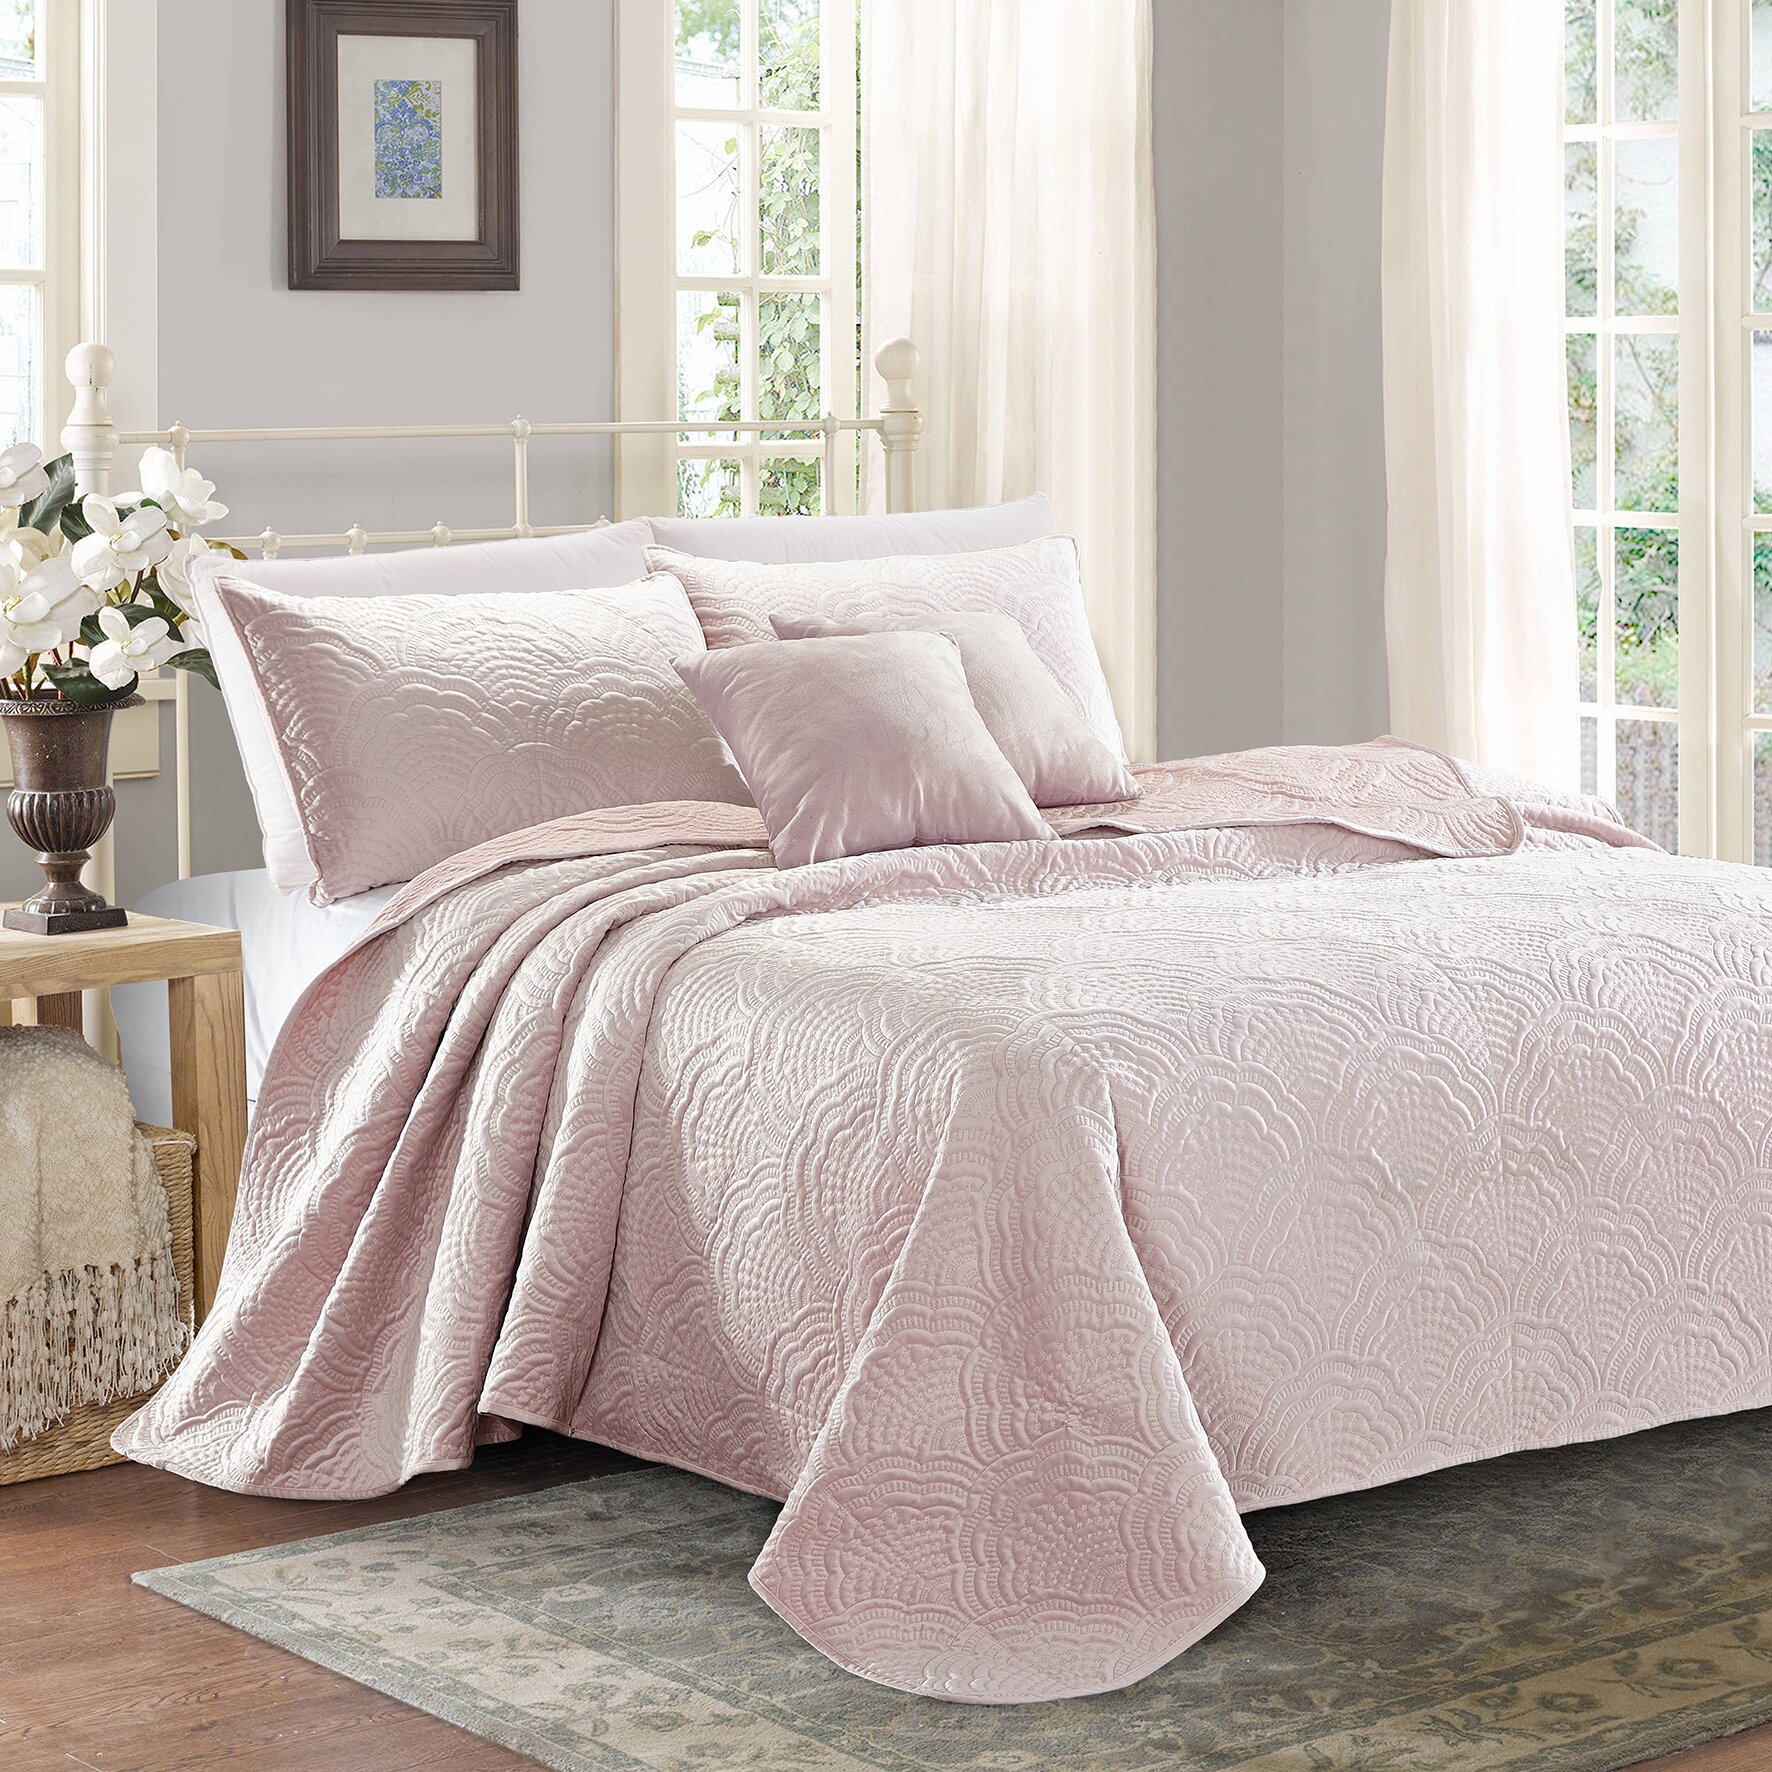 Beachy Dry Clean Only Quilts Coverlets Sets You Ll Love In 2021 Wayfair